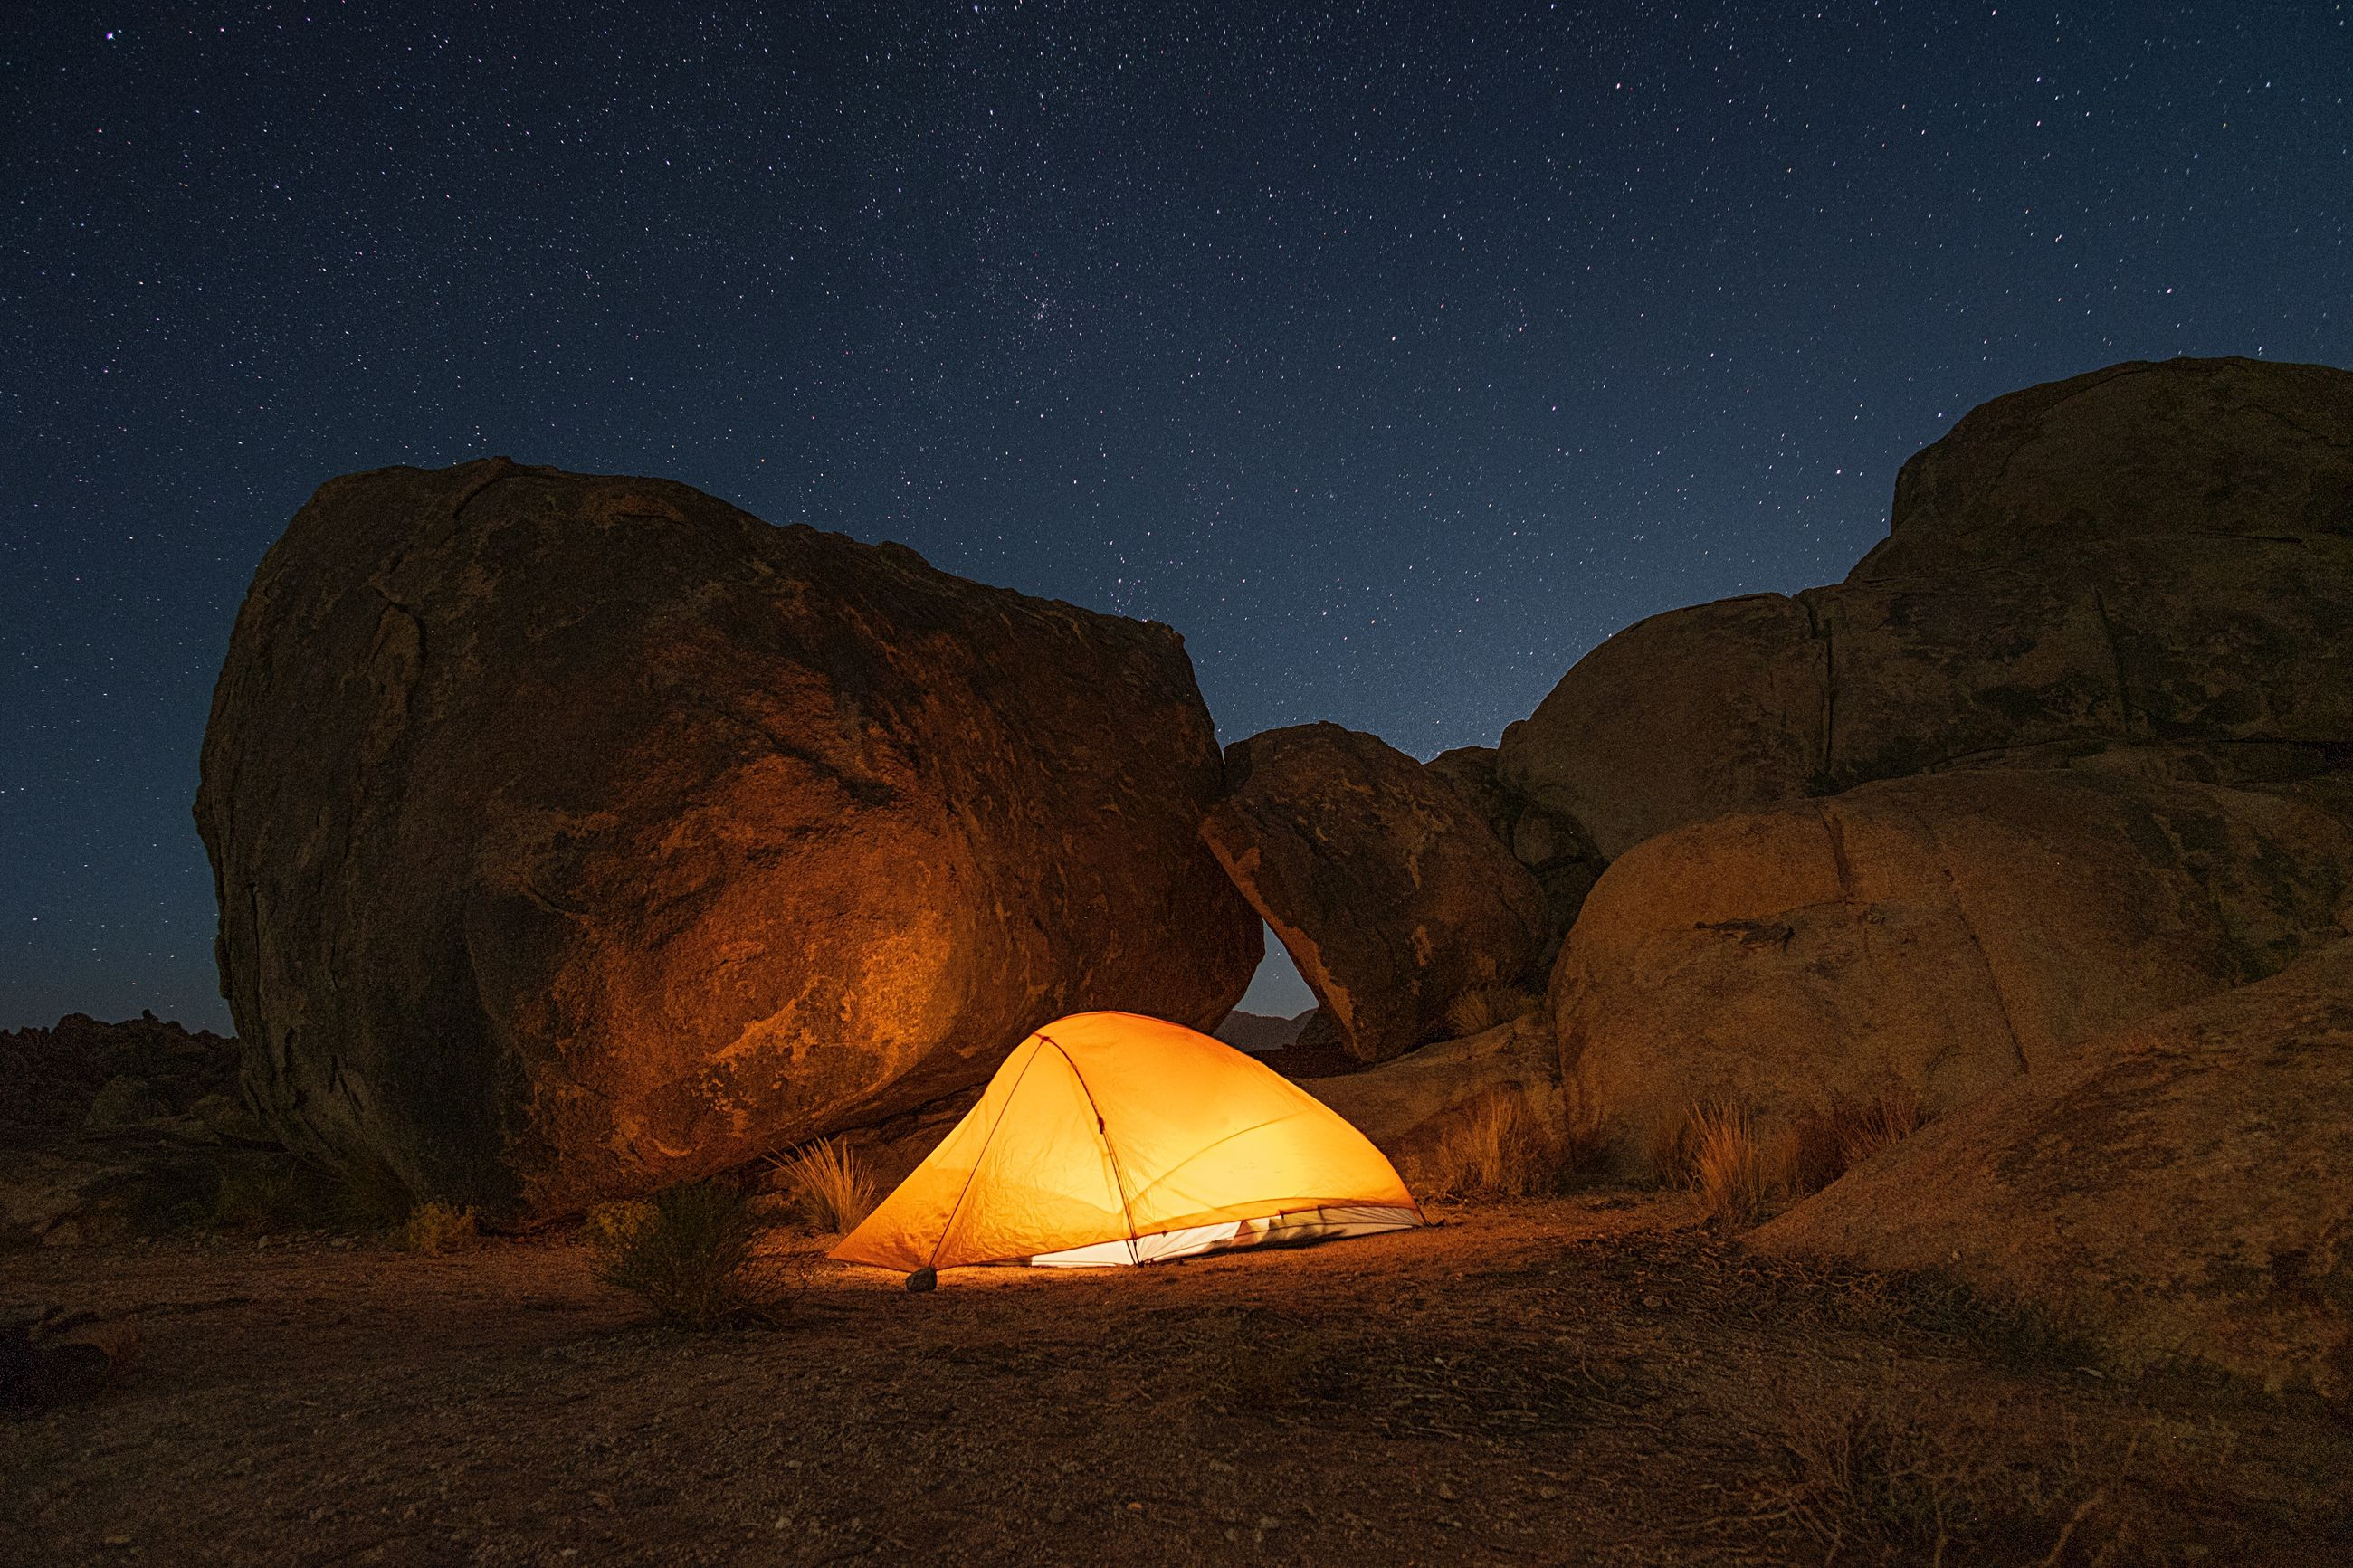 Illuminated tent by rock formations against star field sky